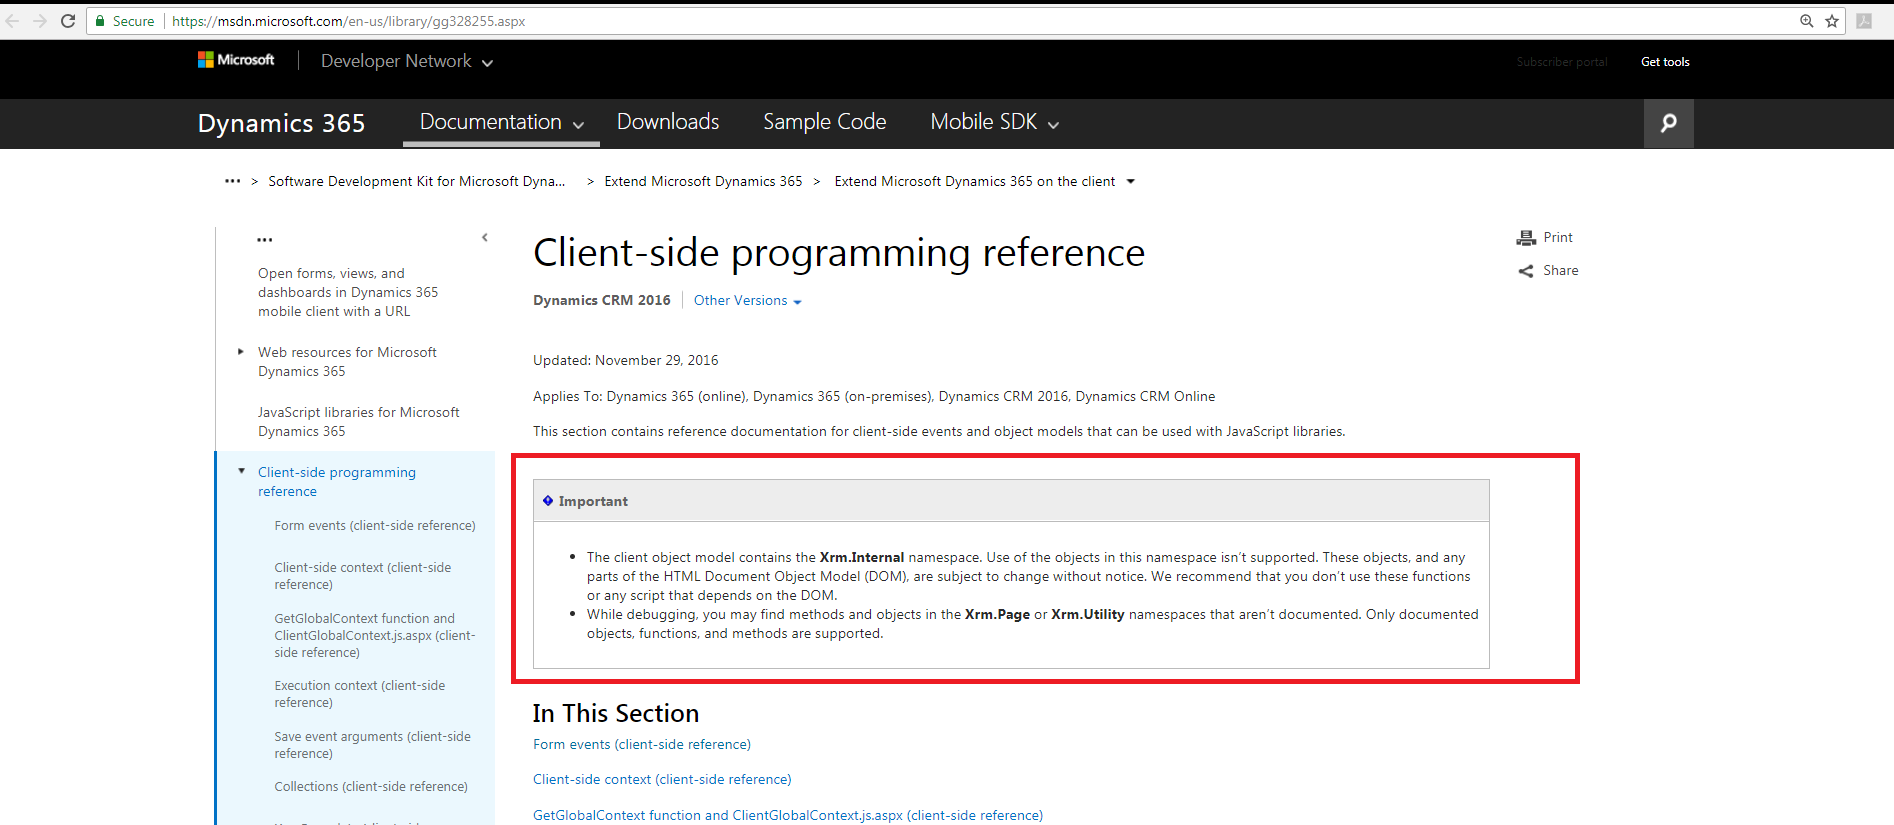 passing entity id to CRM dialog gives access denied error